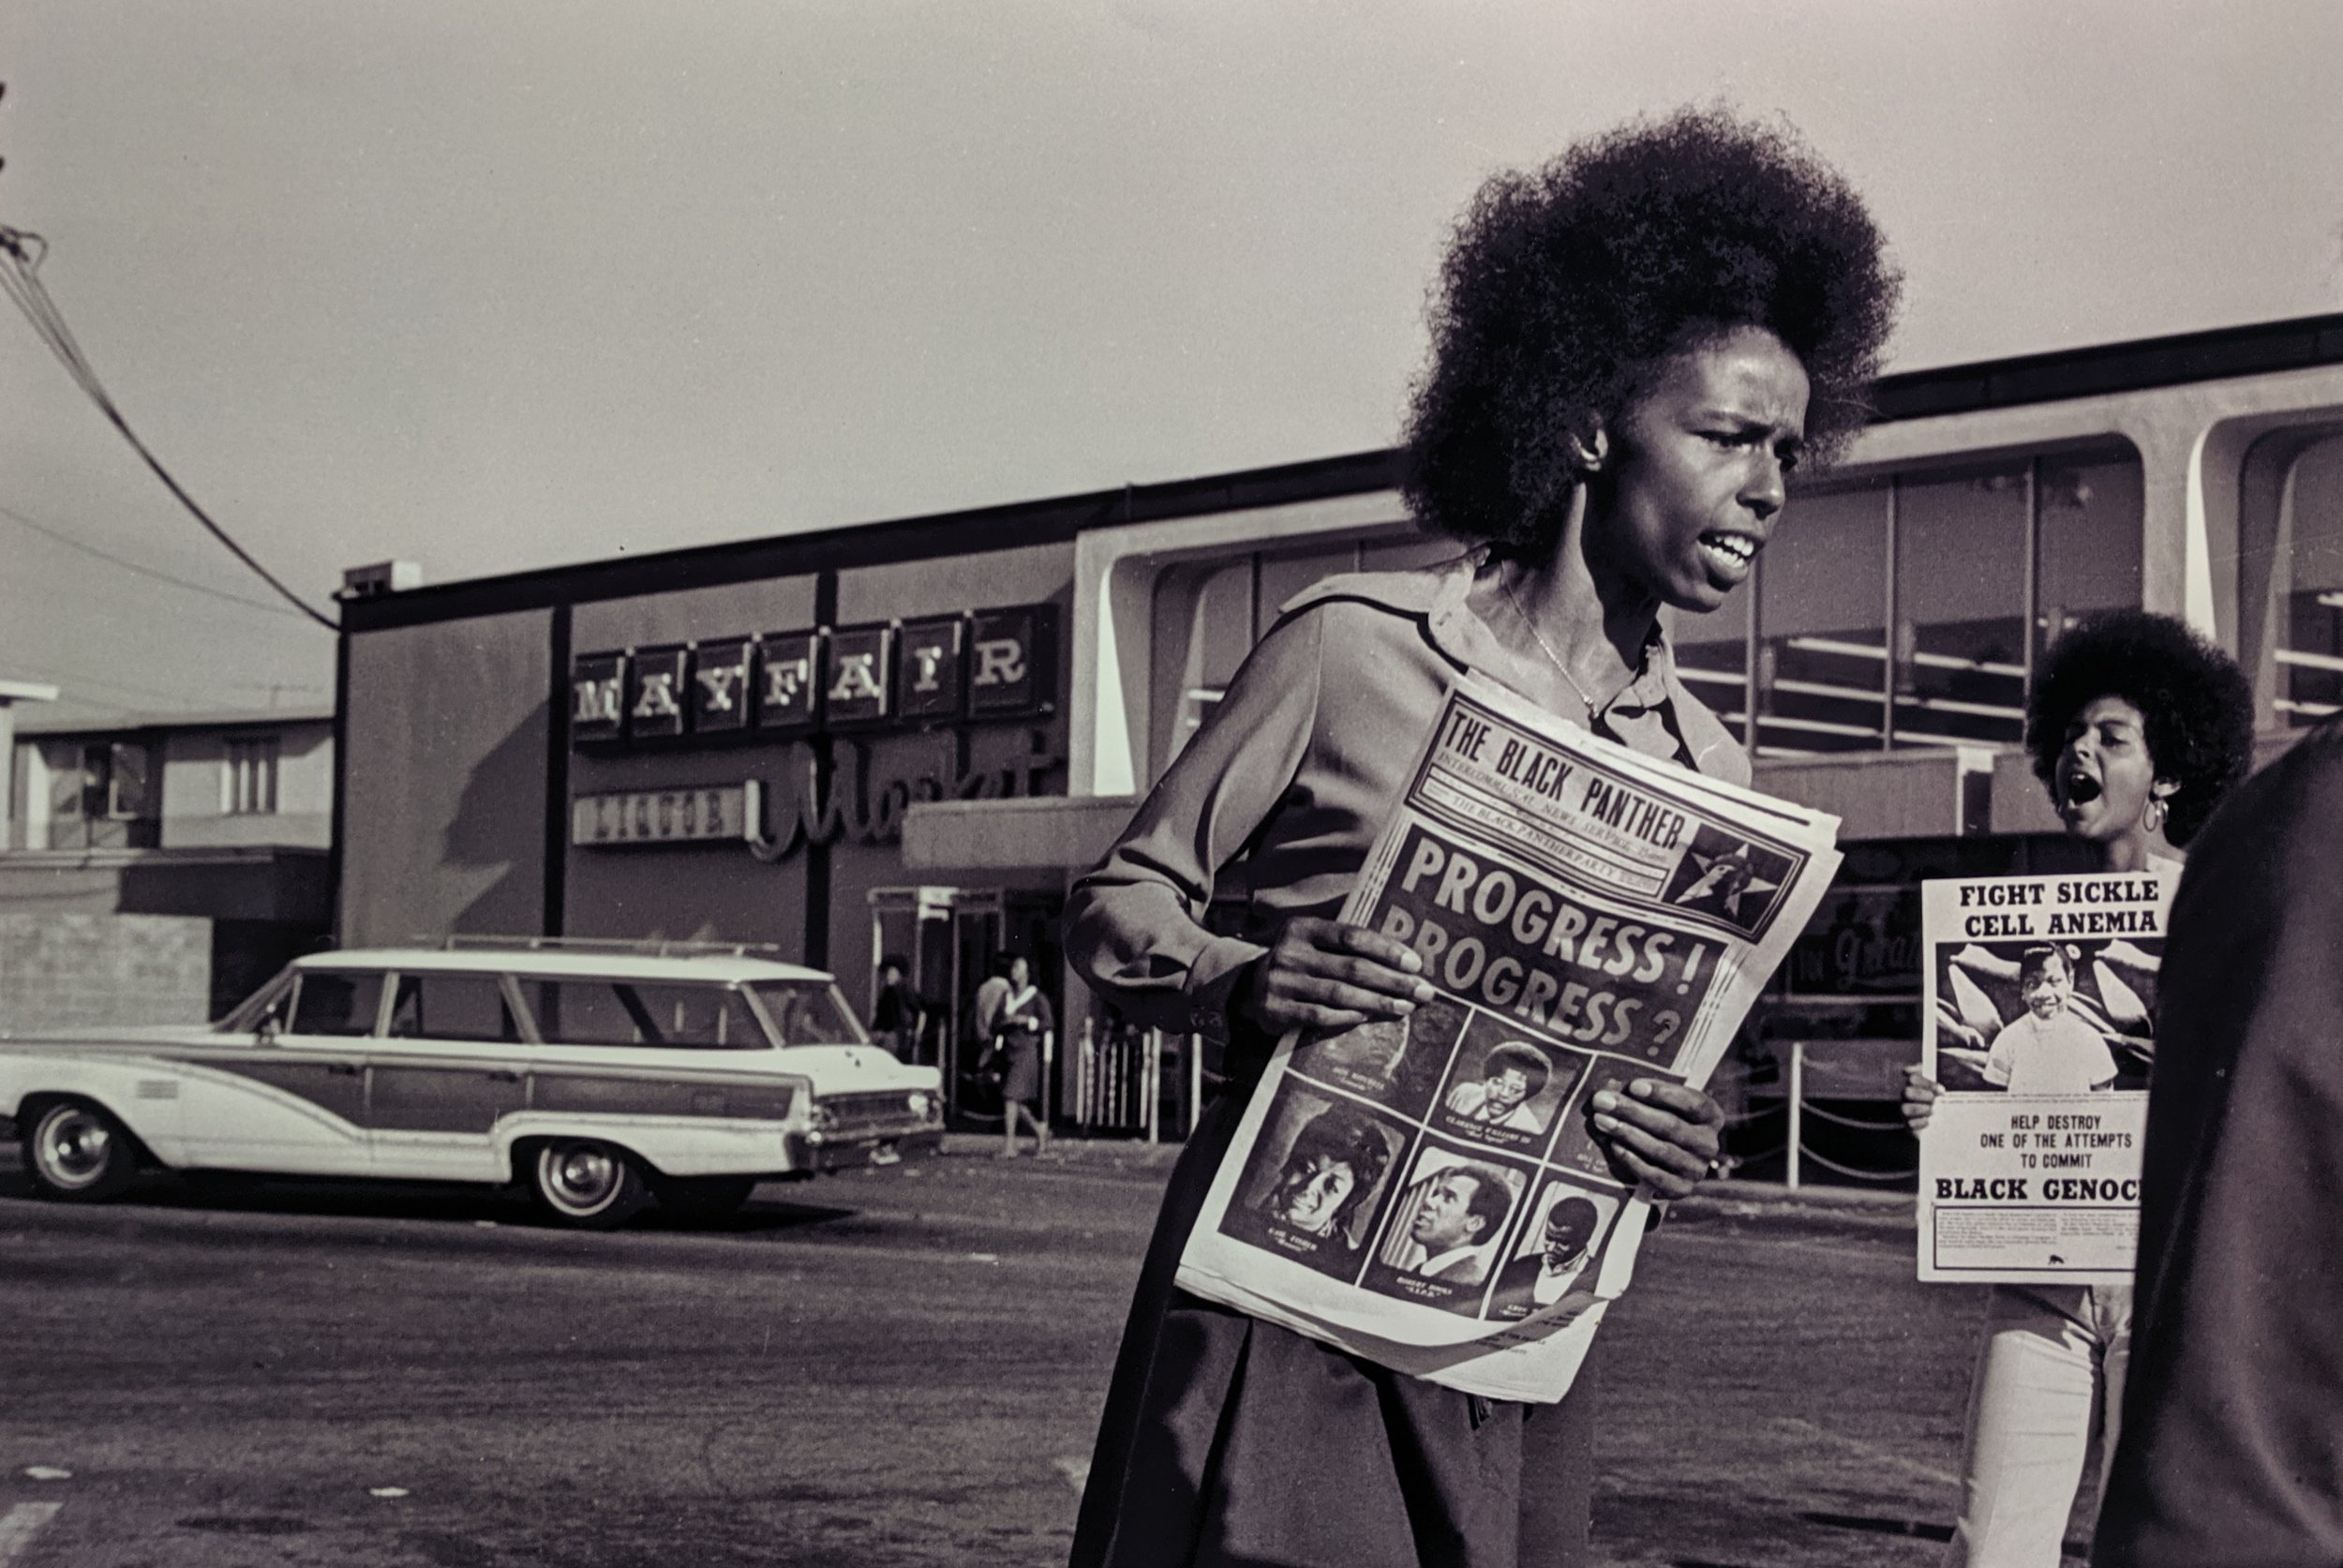 Th   e enduring influence of the Black Panther Party newspaper